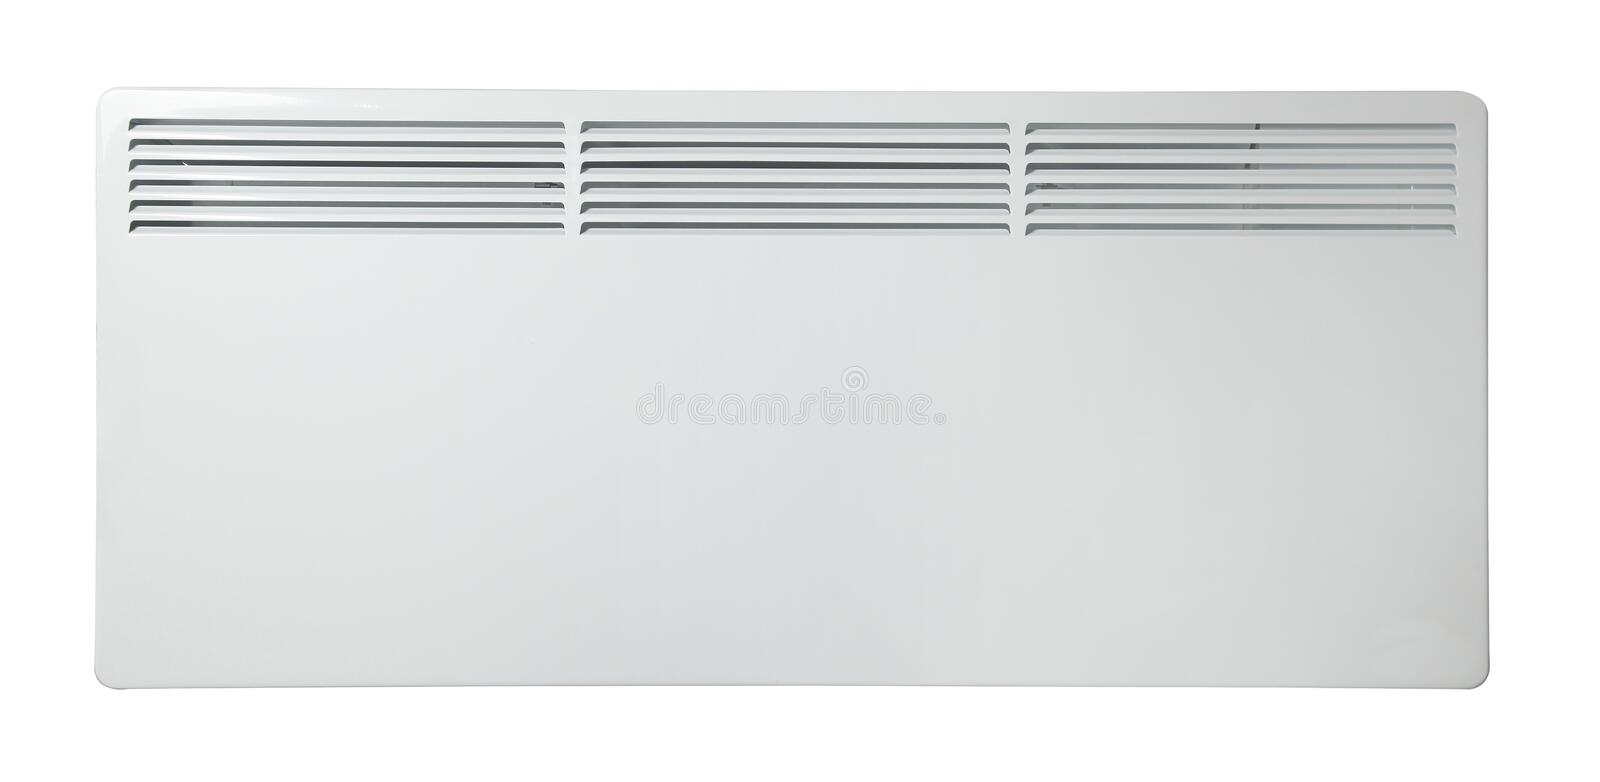 Electric heater battery. Radiator. Isolated on white background. royalty free stock photos